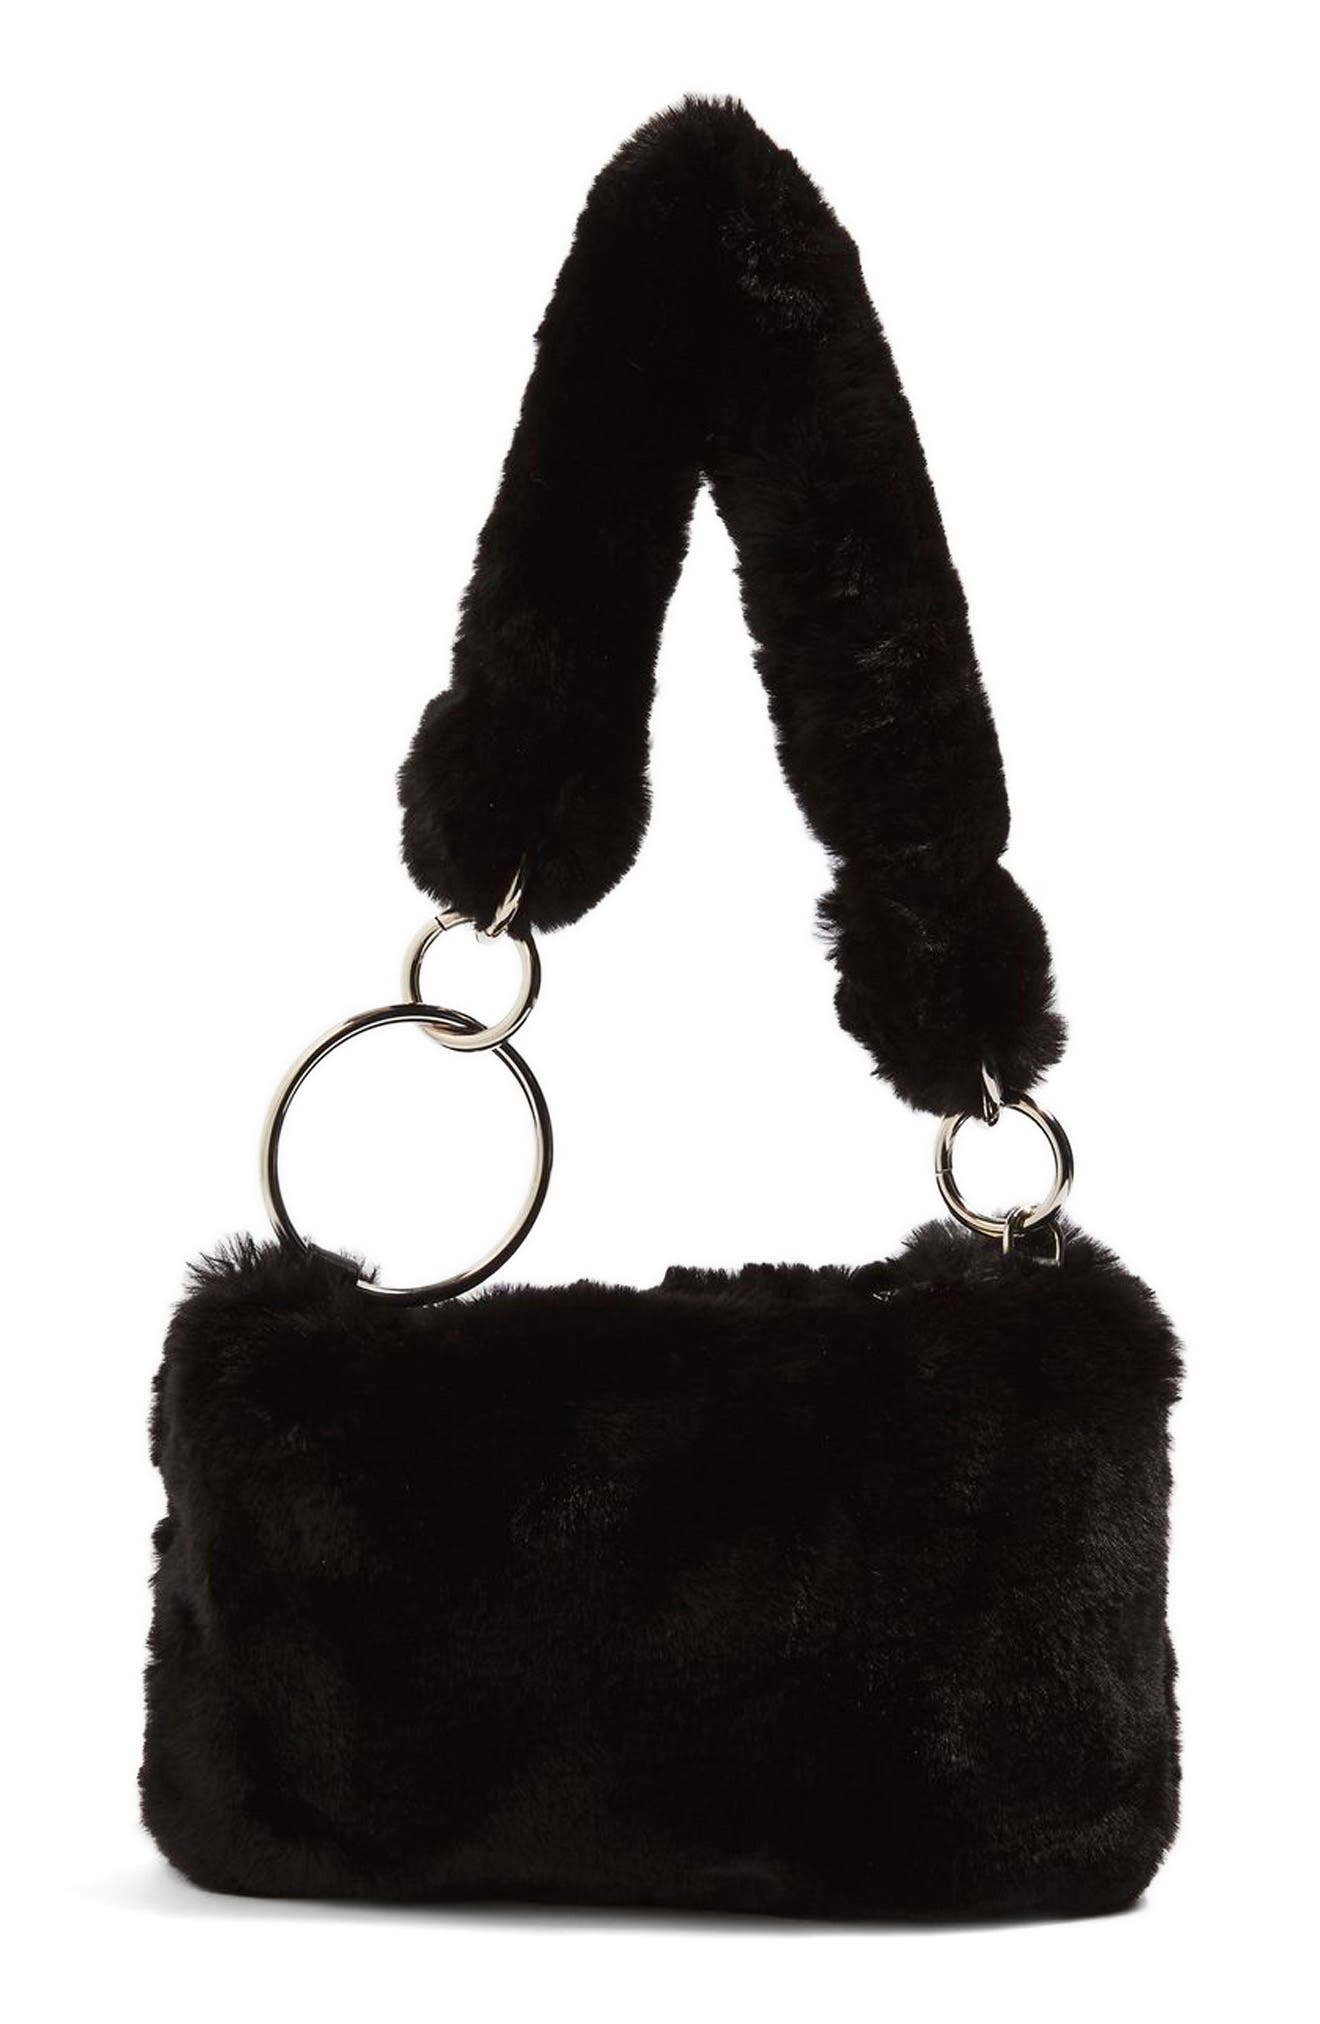 Topshop Teddy Faux Fur Shoulder Bag